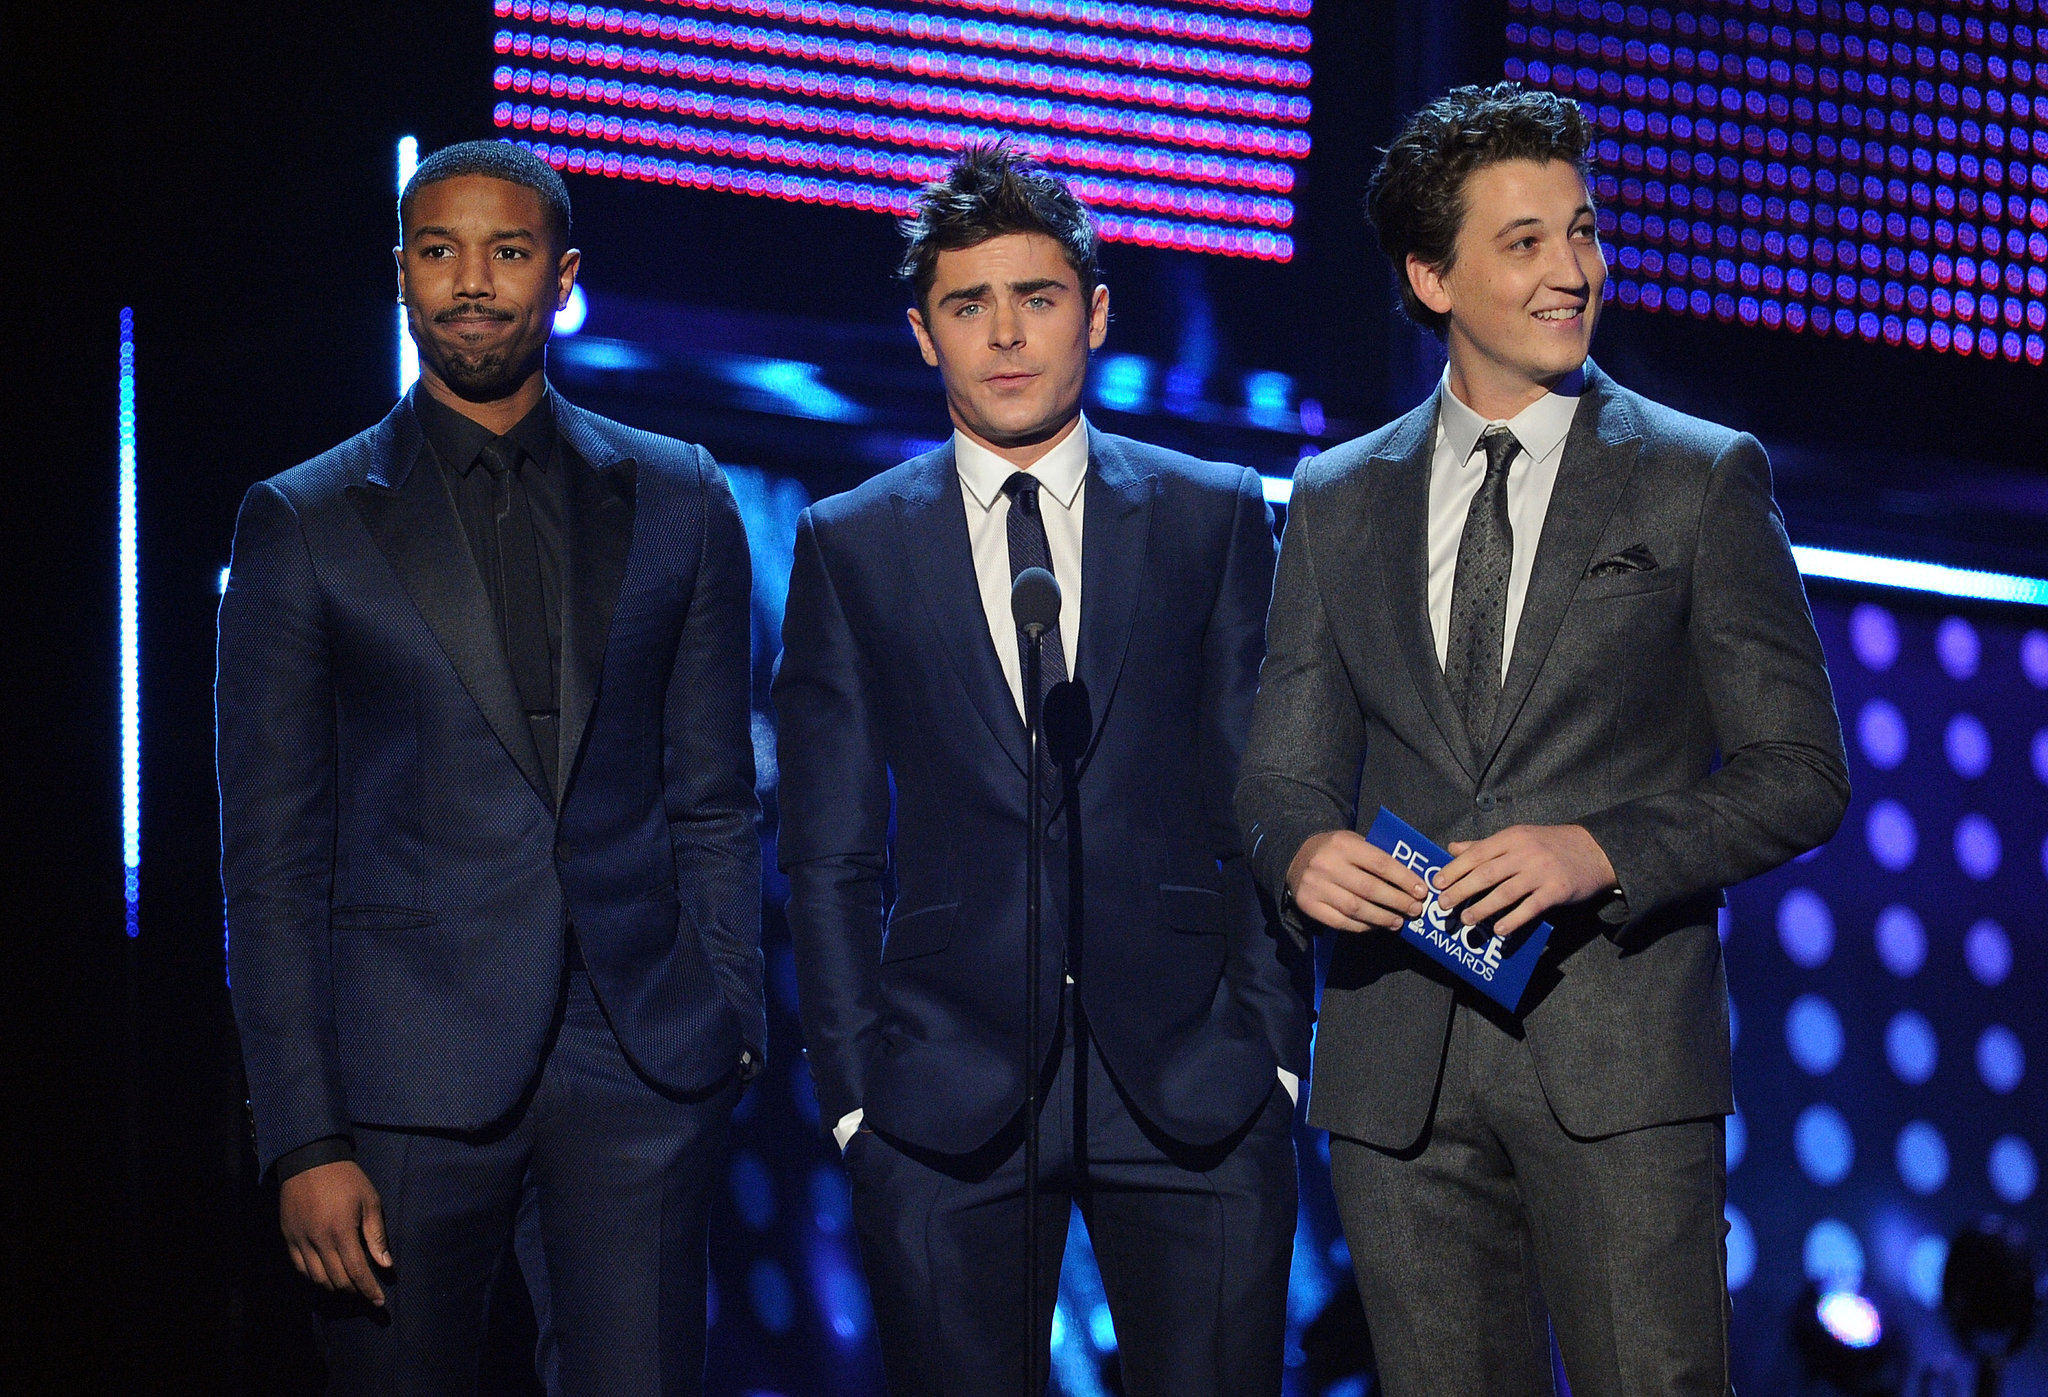 Michael B. Jordan, Zac Efron, and Miles Teller suited up to present at the award show.